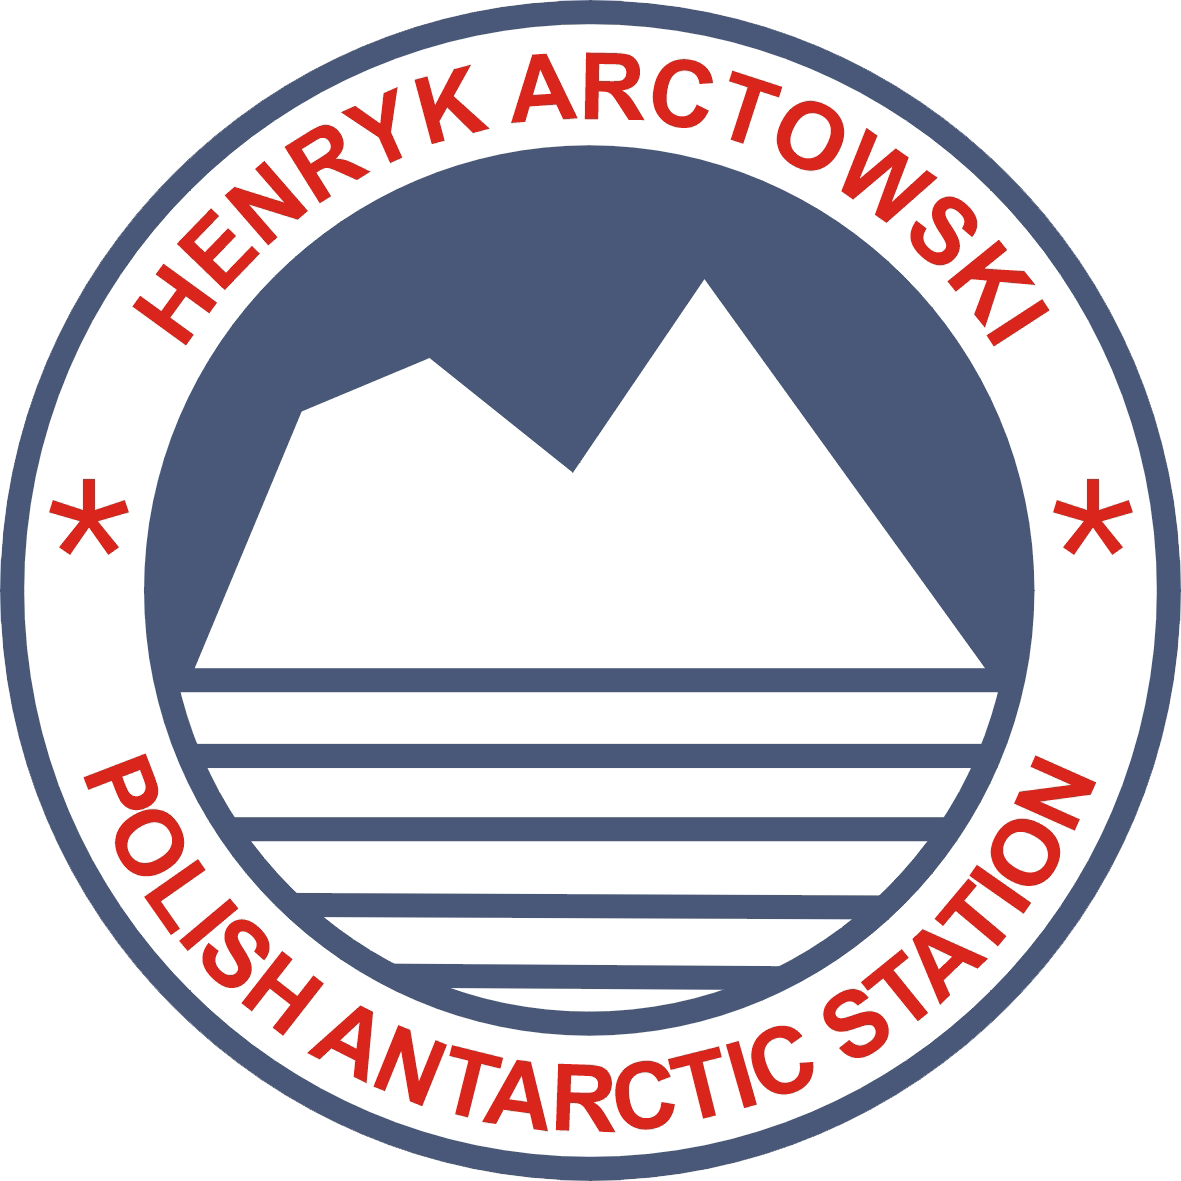 Arctowski Polish Antarctic Station